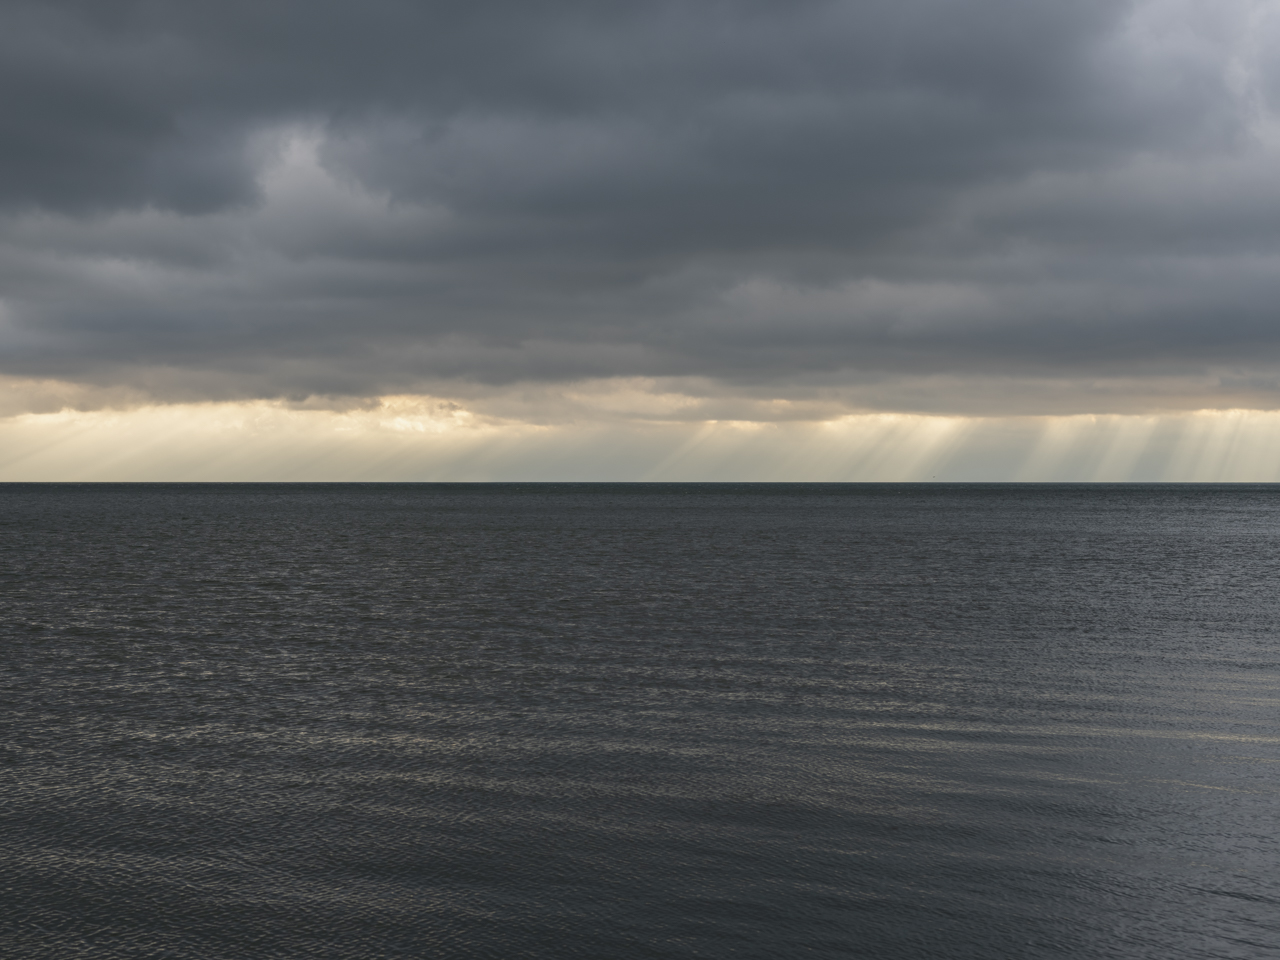 dark lake water and rains on the horizon with dark and heavy clouds